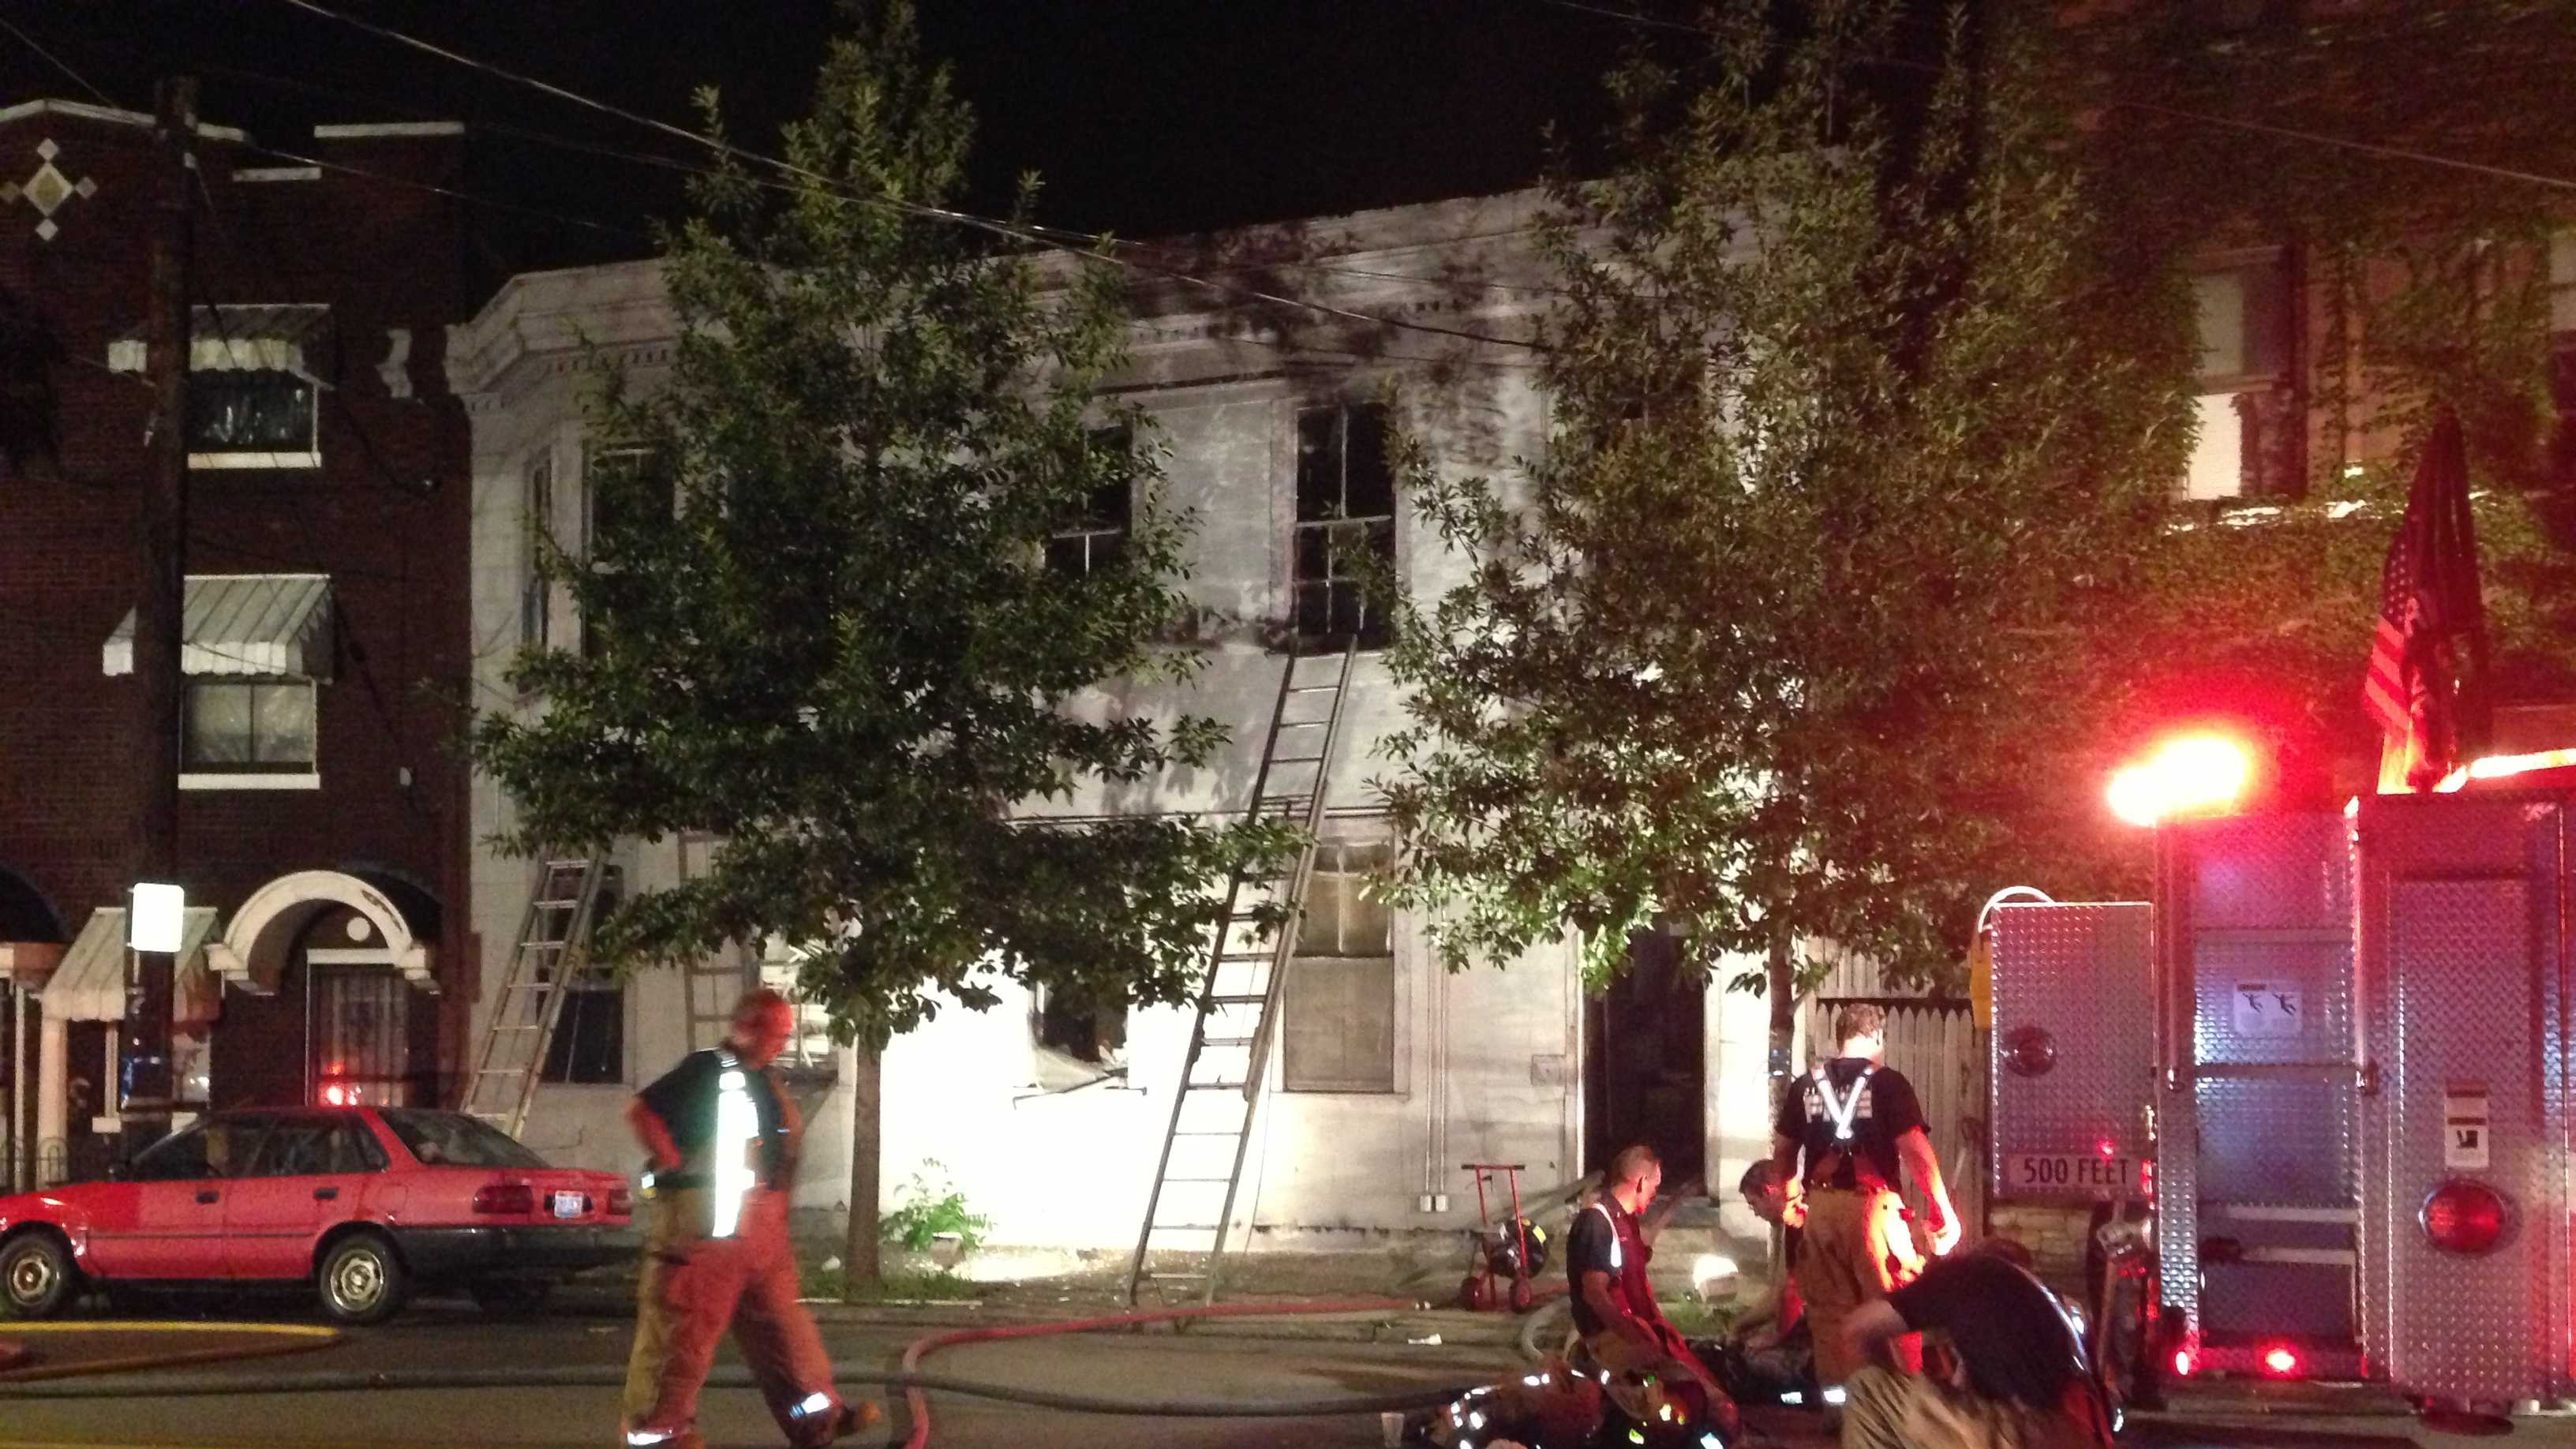 A fire broke out in an unoccupied building in the 600 block of West McMicken Avenue.